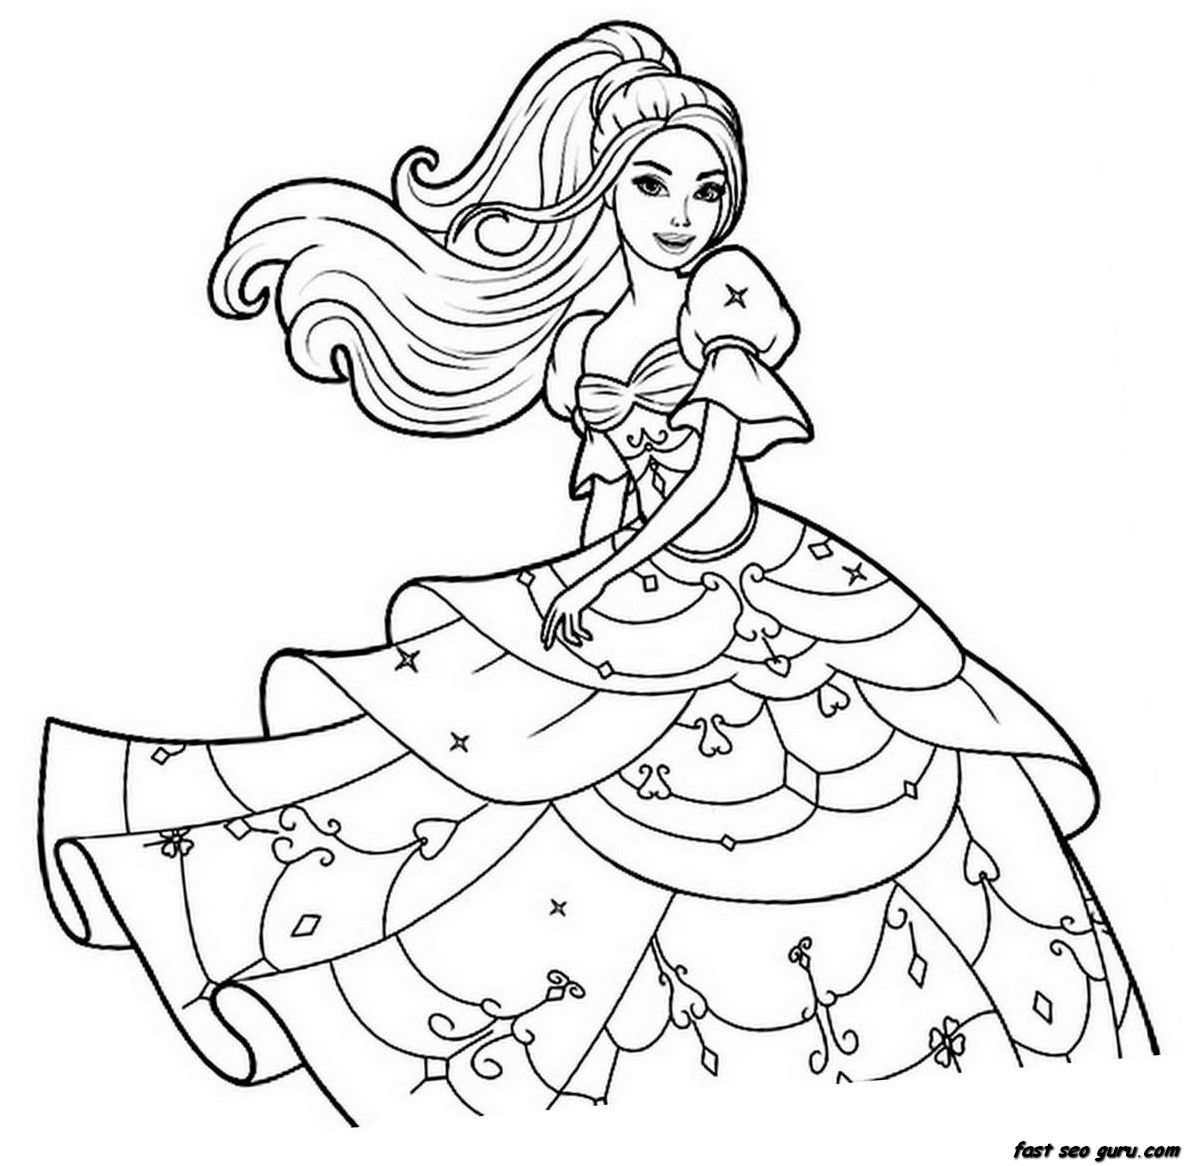 Barbie Weihnachten Ausmalbilder : Color Sheets To Print Out Barbie Print Out Coloring Pages Cancun